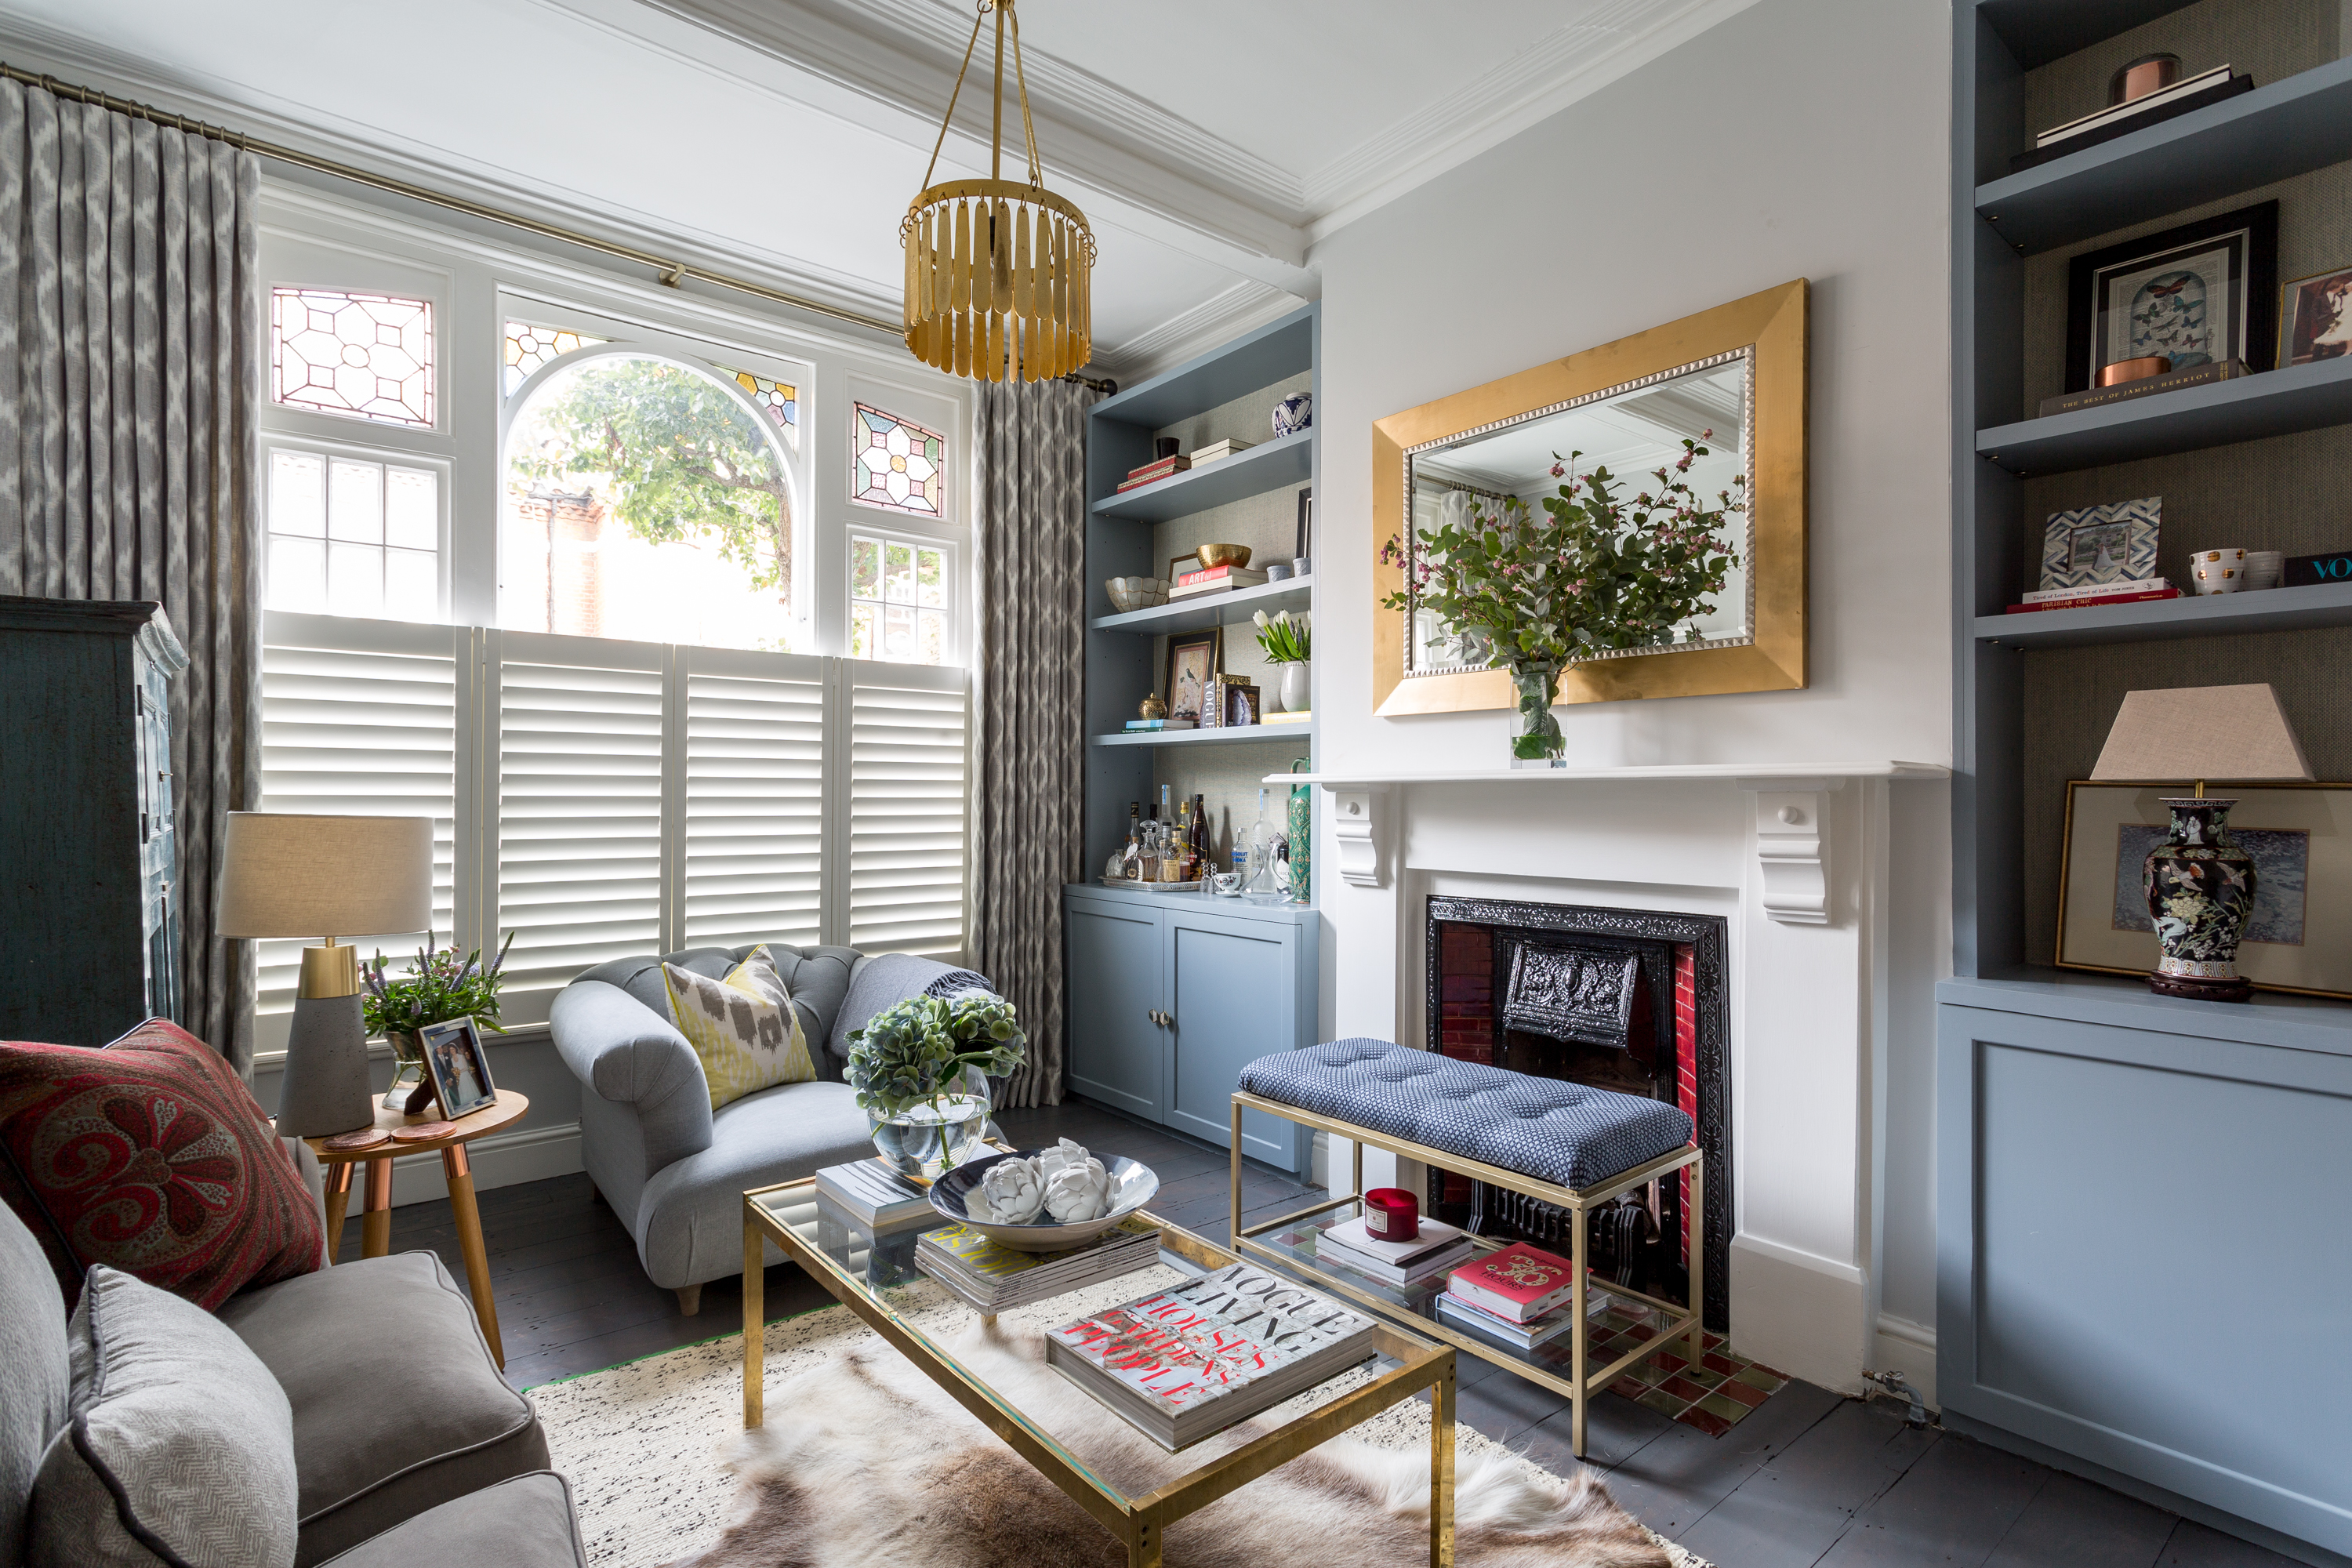 LONDON INTERIOR DESIGNER